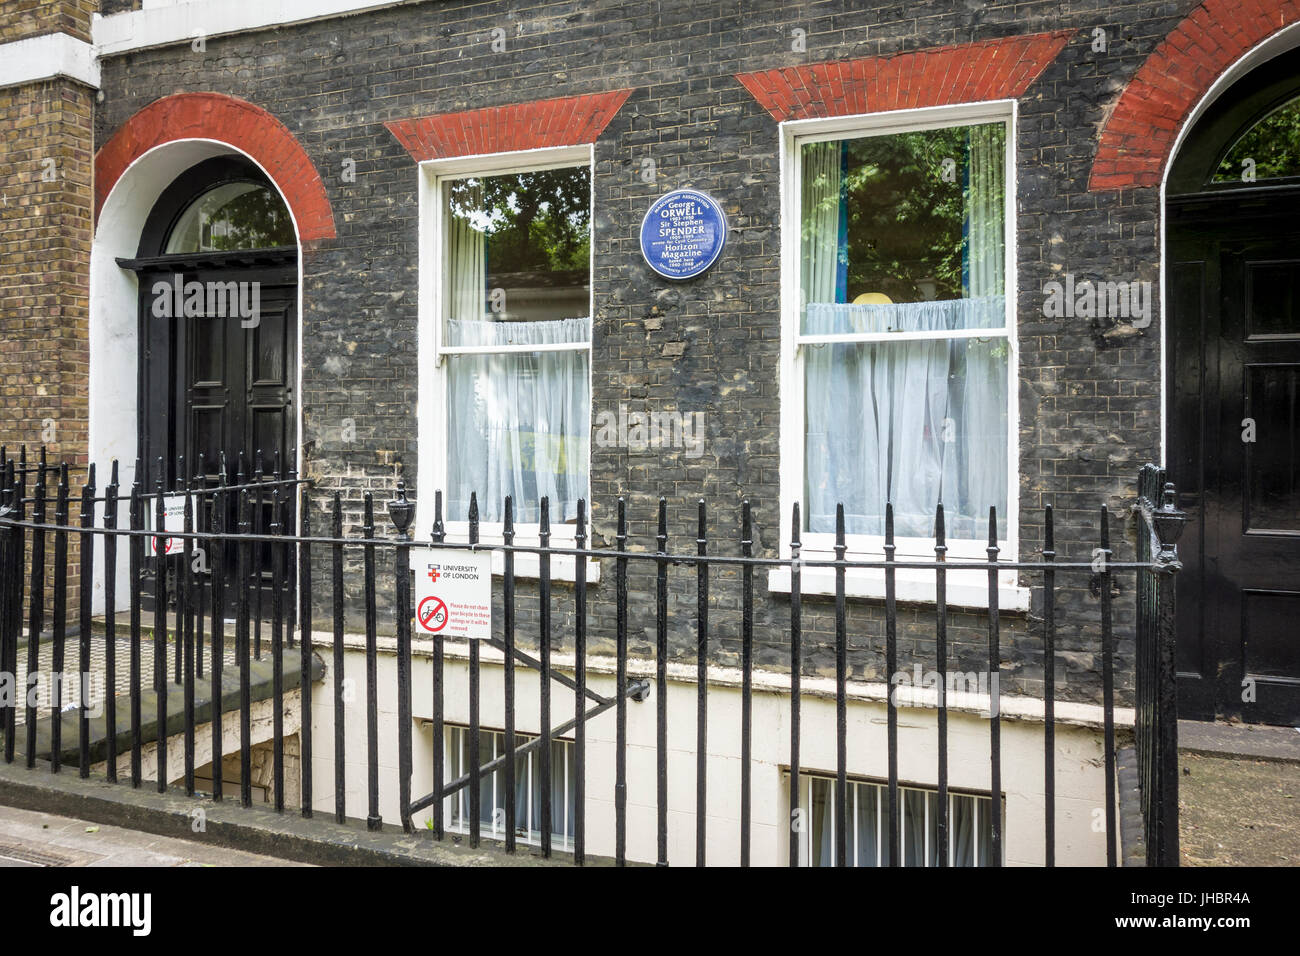 Placa azul, George Orwell, Sir Stephen Spender, Horizon Magazine, Lansdowne Terrace, London, UK Imagen De Stock